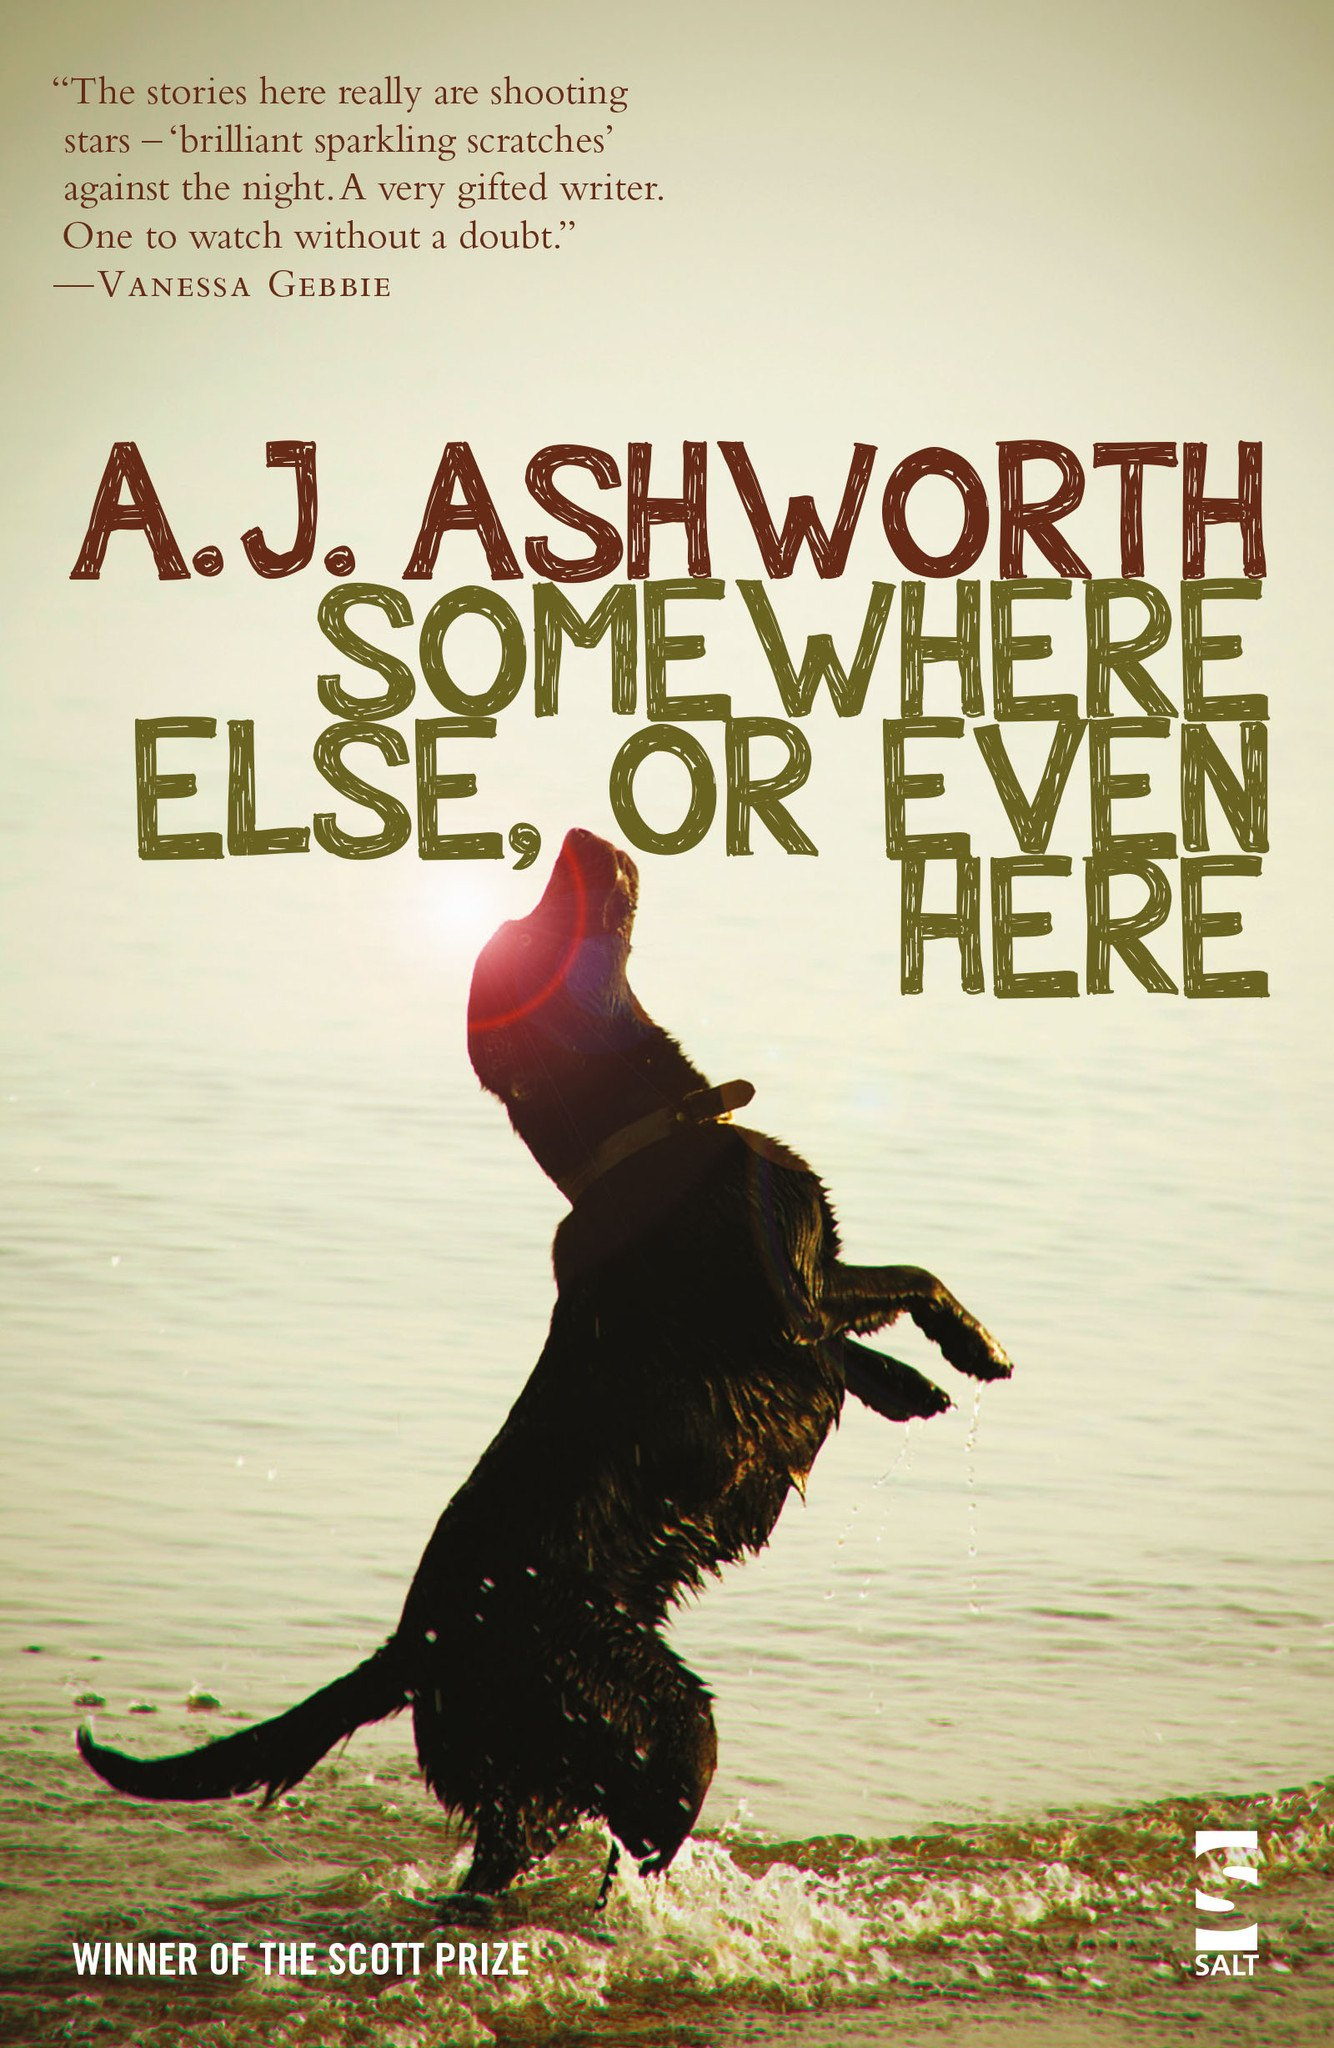 A.J.Ashworth - Somewhere else or even here book cover